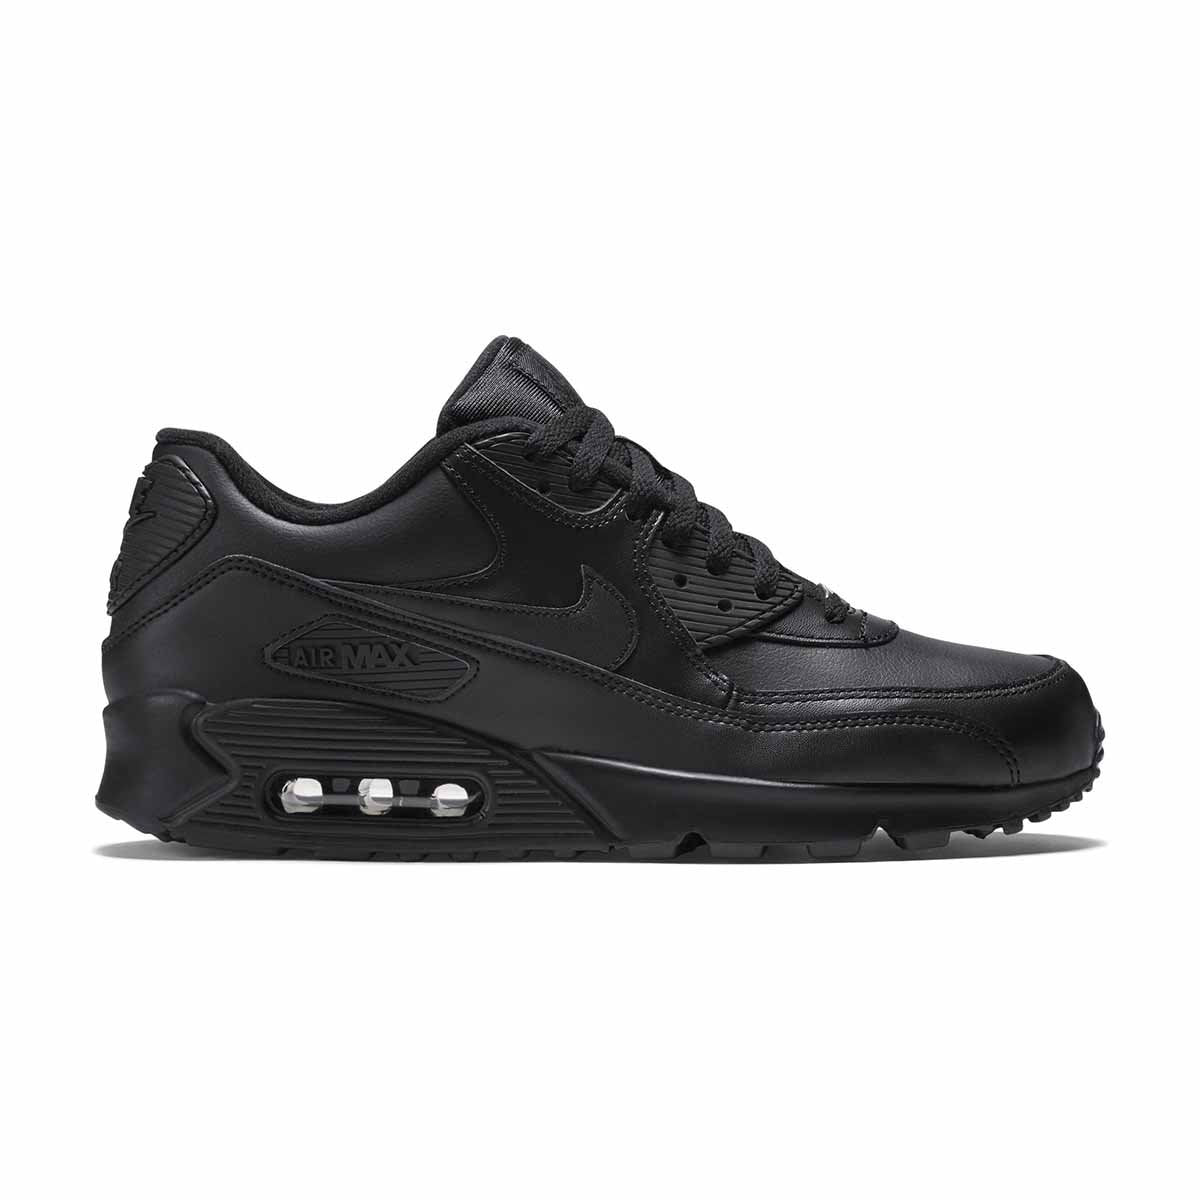 Men's Nike Air Max '90 Leather Shoe